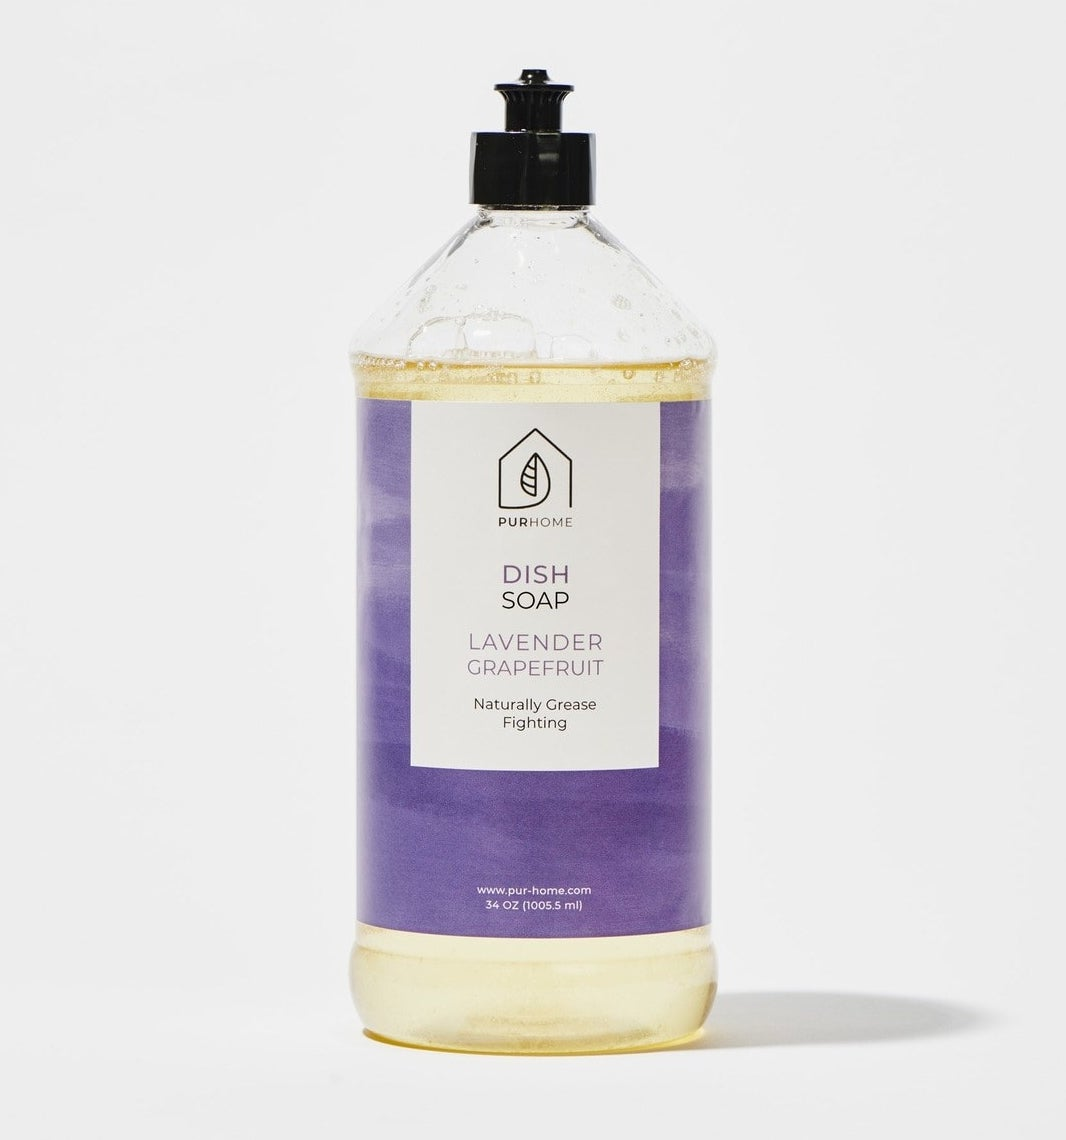 A bottle of the soap